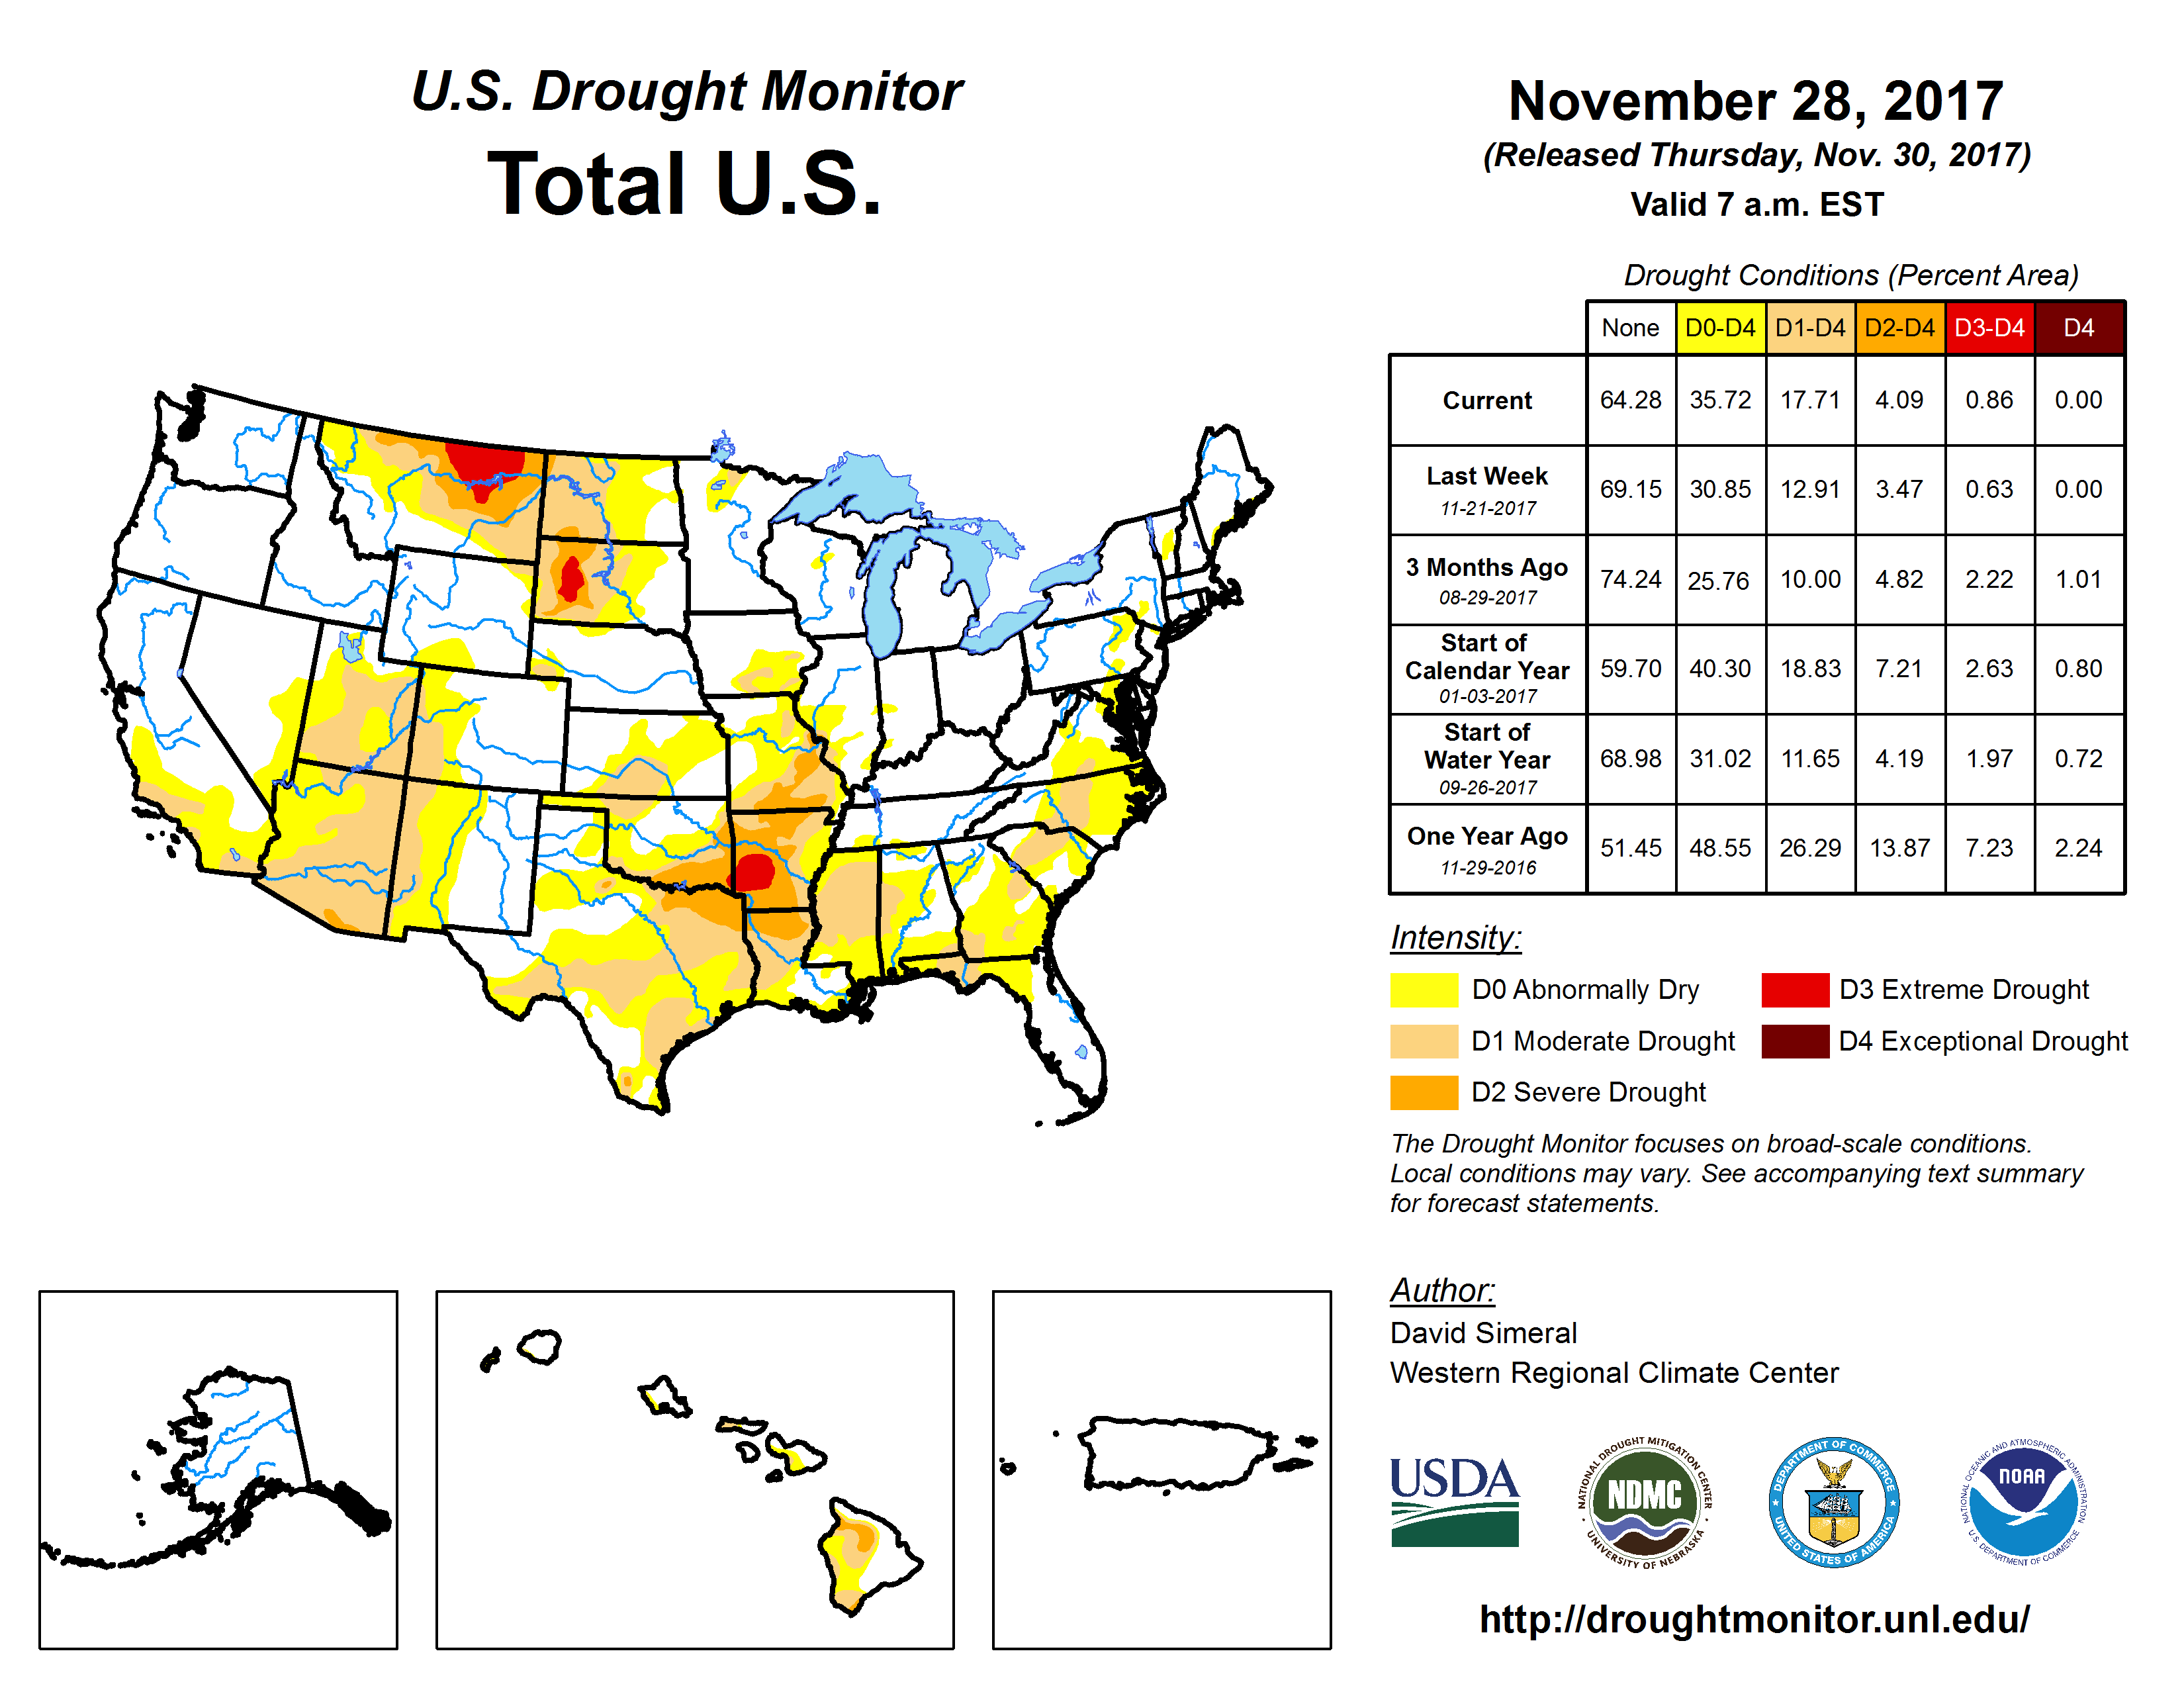 The U.S. Drought Monitor drought map valid November 28, 2017